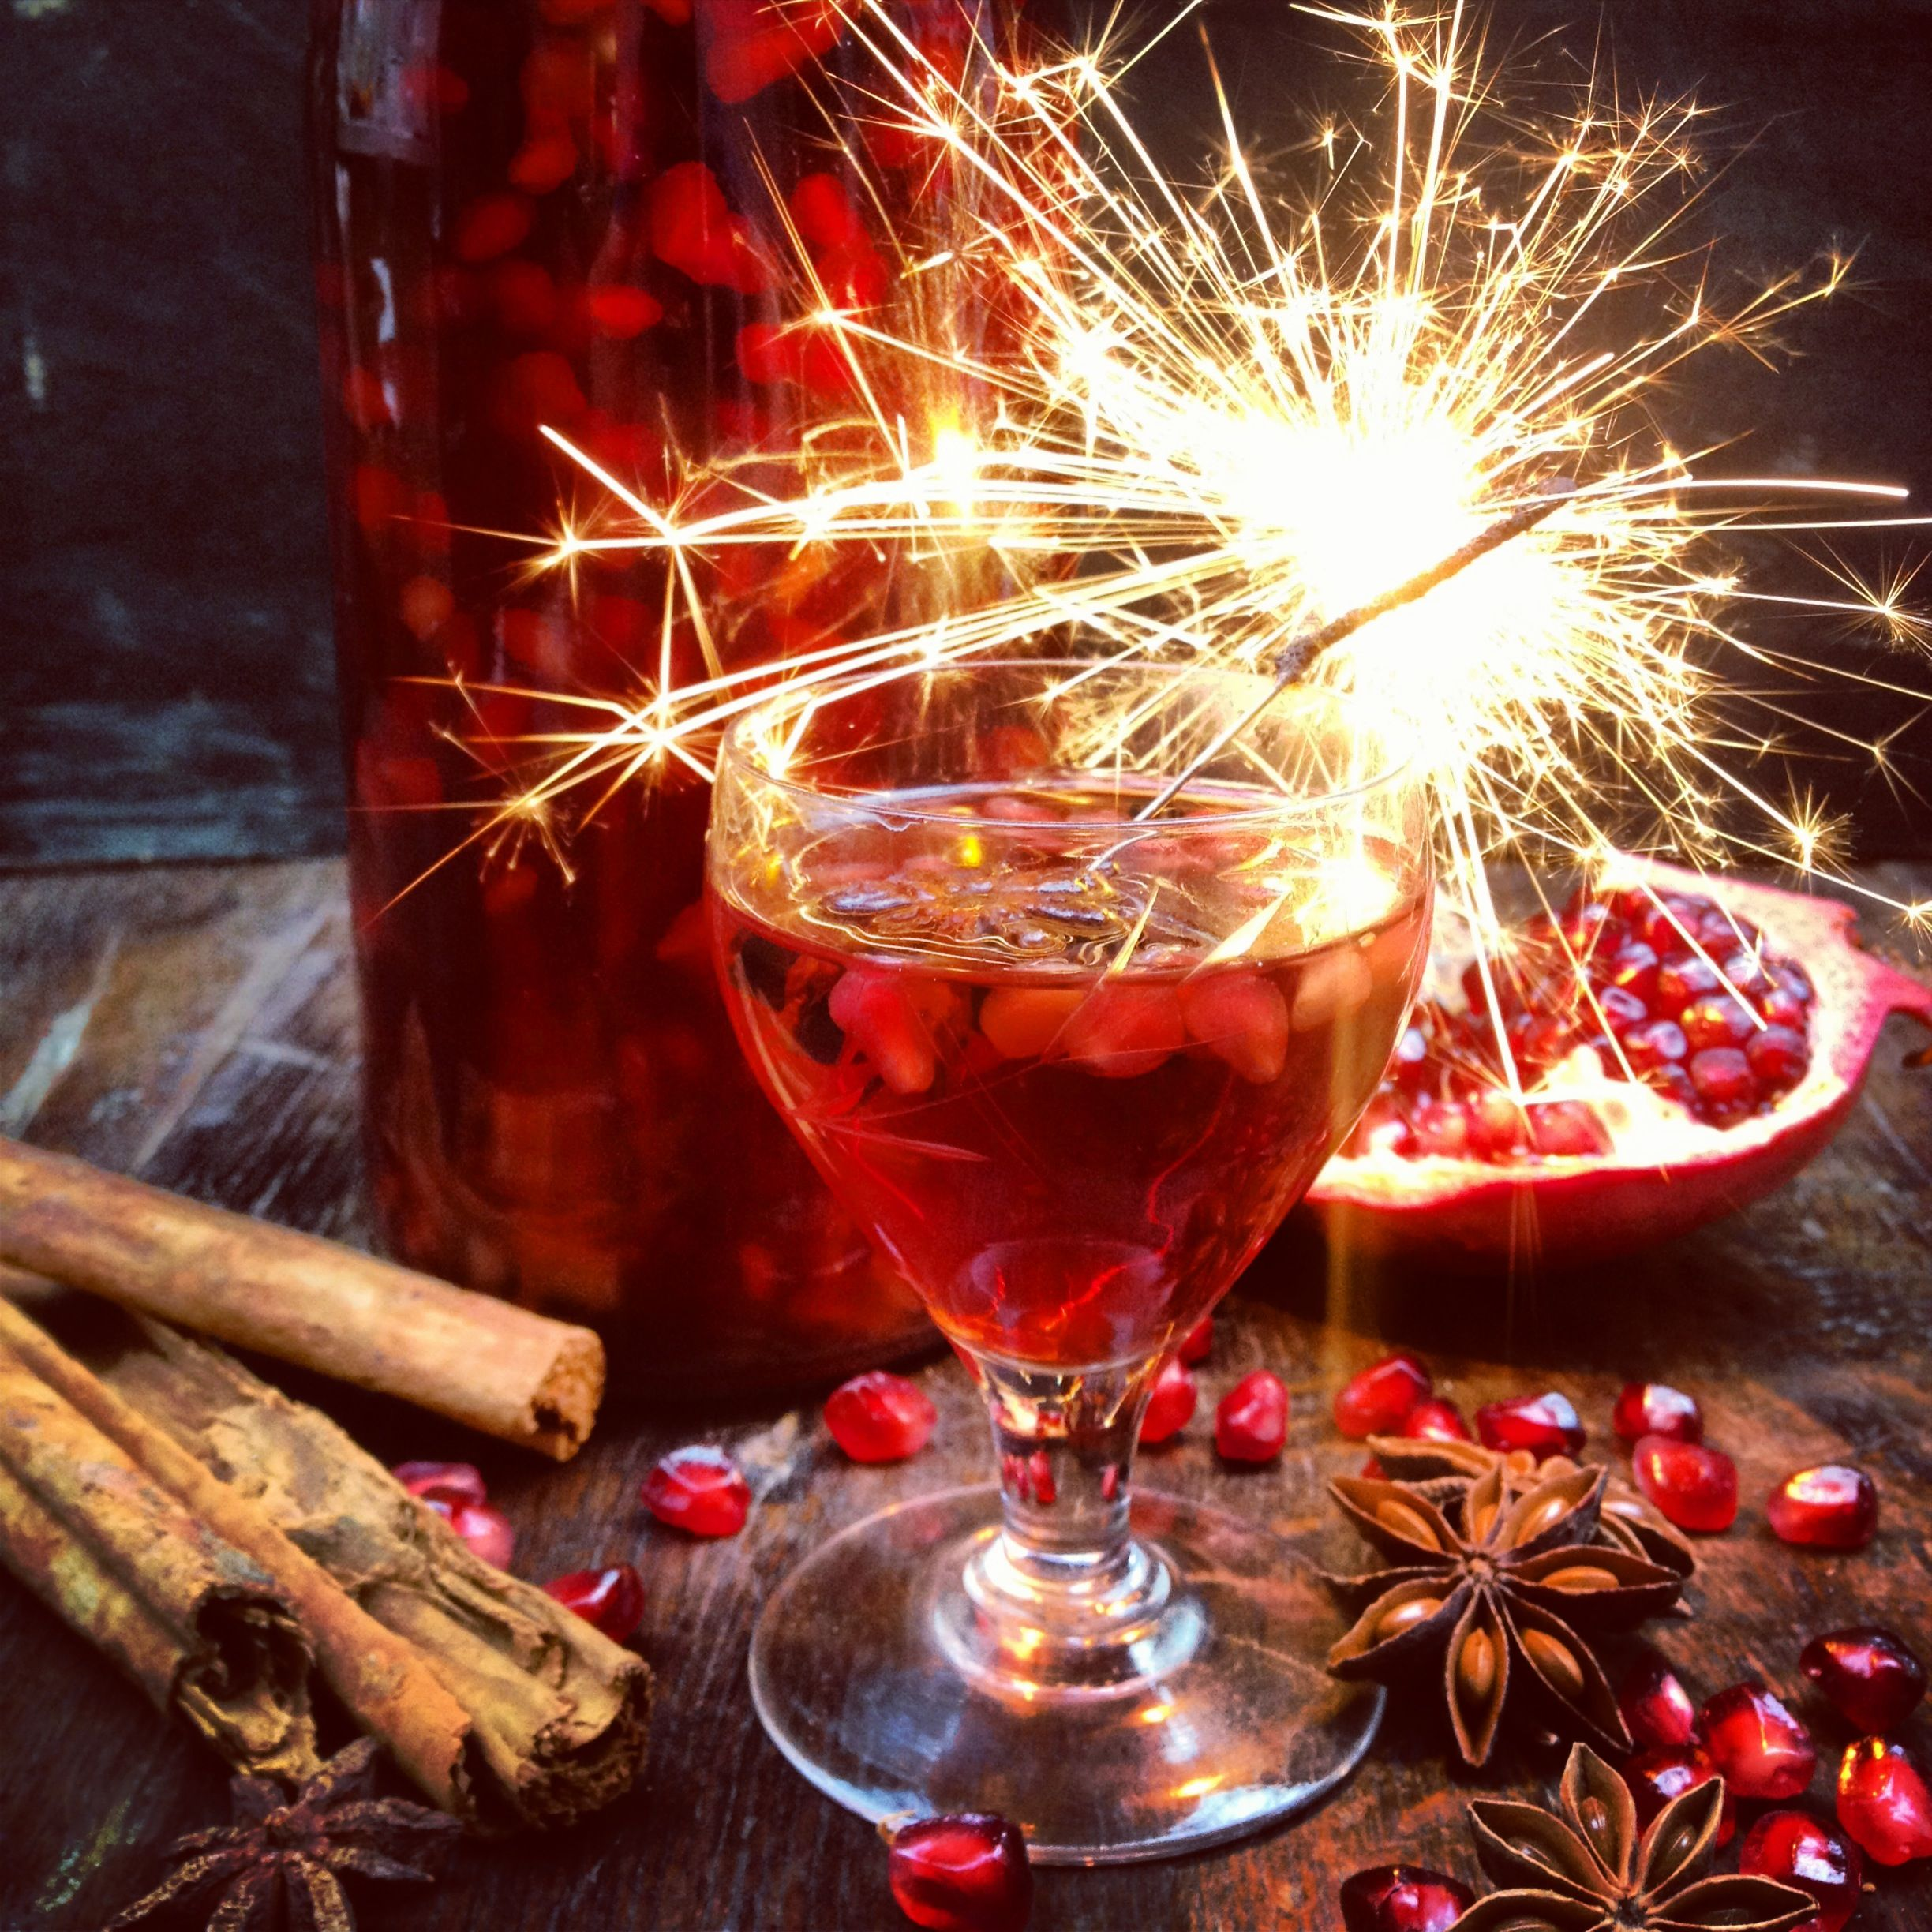 It S Not All About Mulled Wine And Cider Just Get A Bottle Of Your Favourite Spirit And Drop In Some Aromatic Spices Like Star Anise Cloves Cin Christmas Food